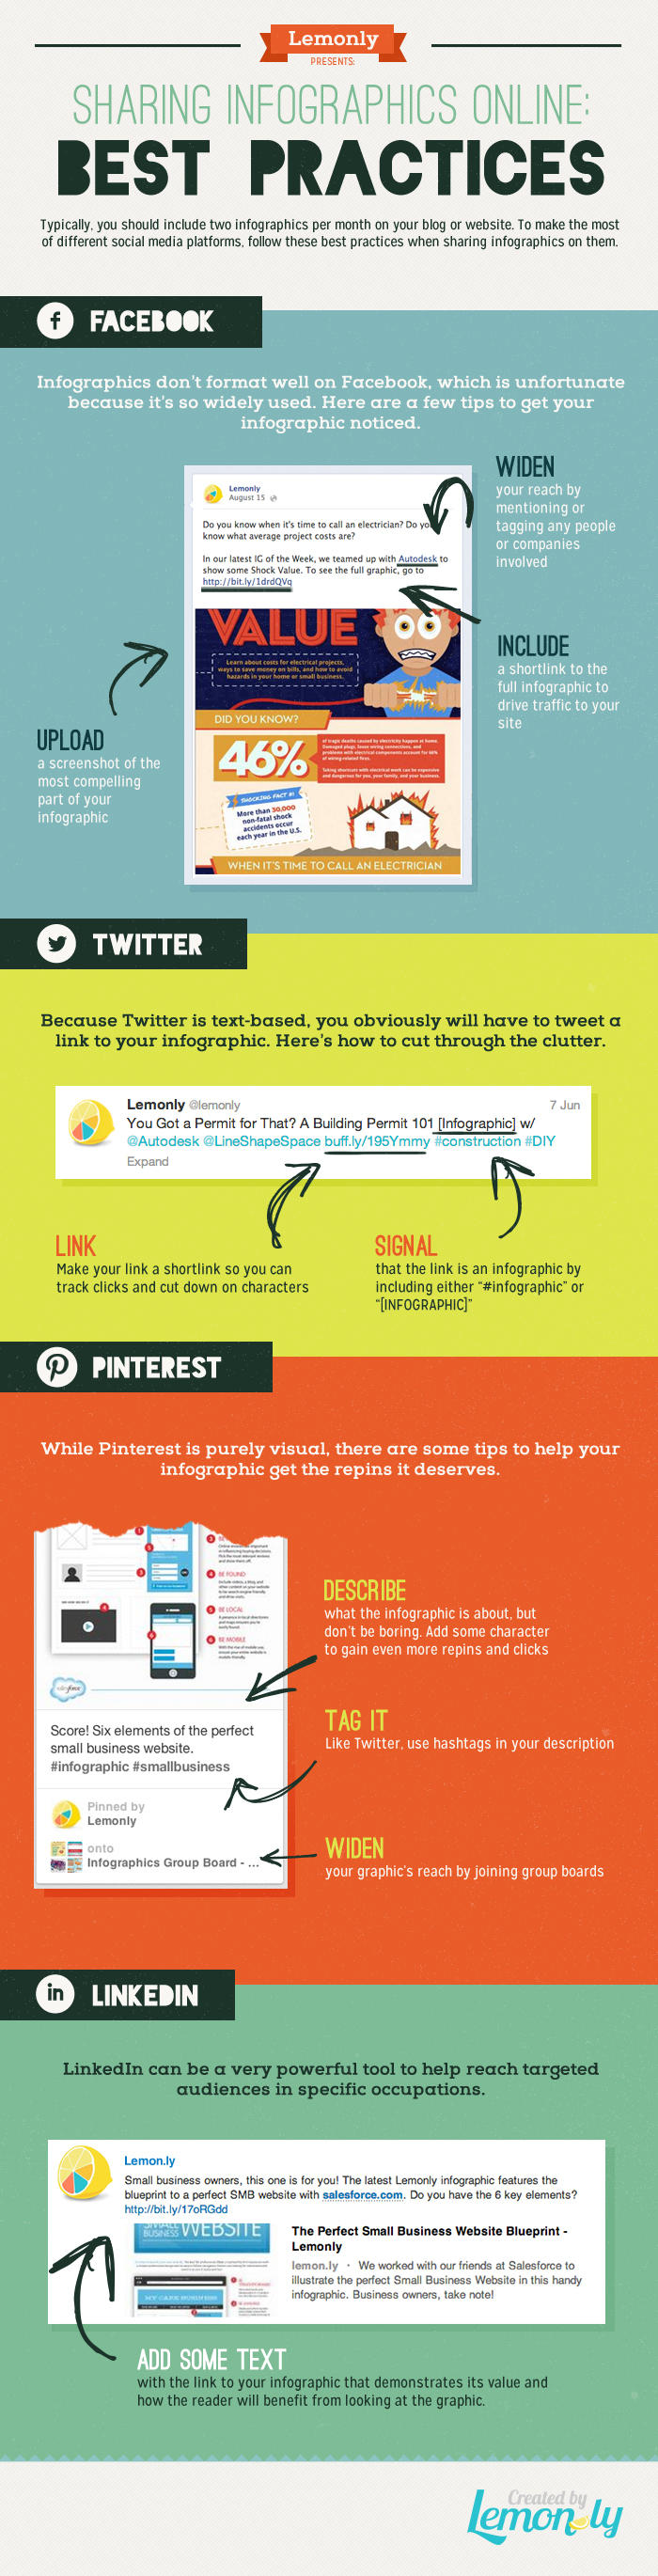 Social Networks Guide for Sharing Infographics